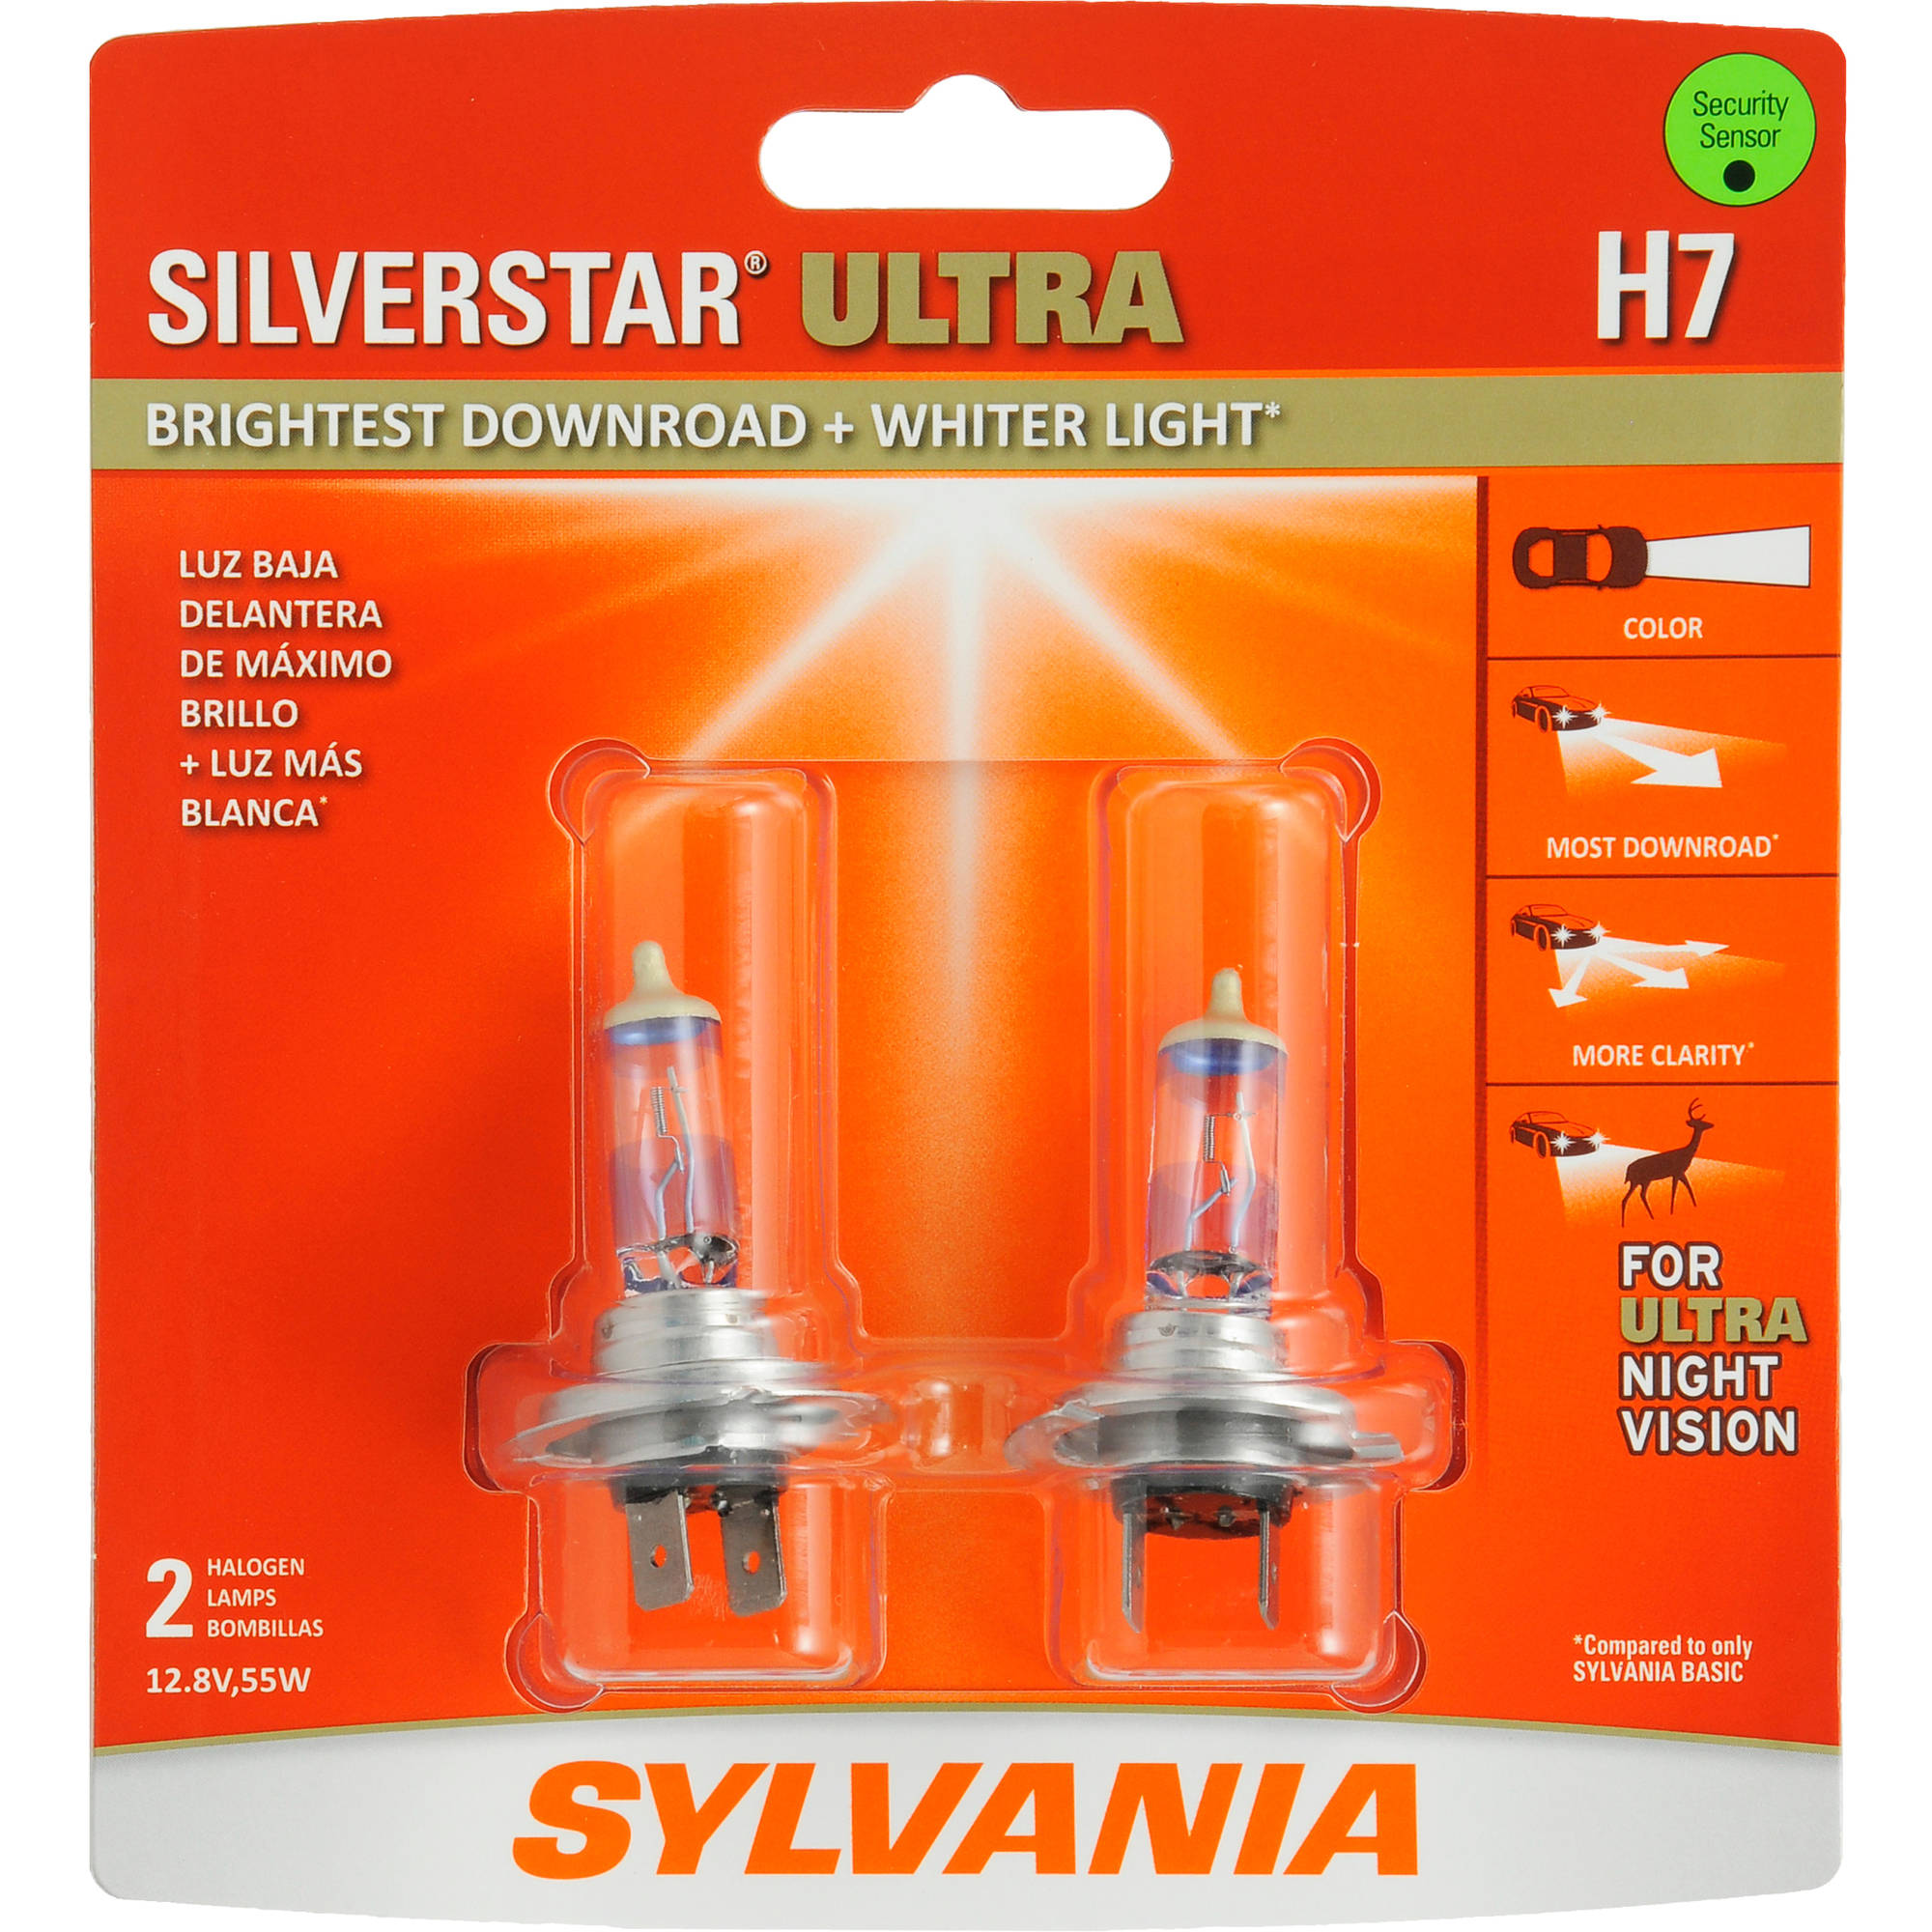 Sylvania H7 SilverStar ULTRA Headlight, Contains 2 Bulbs